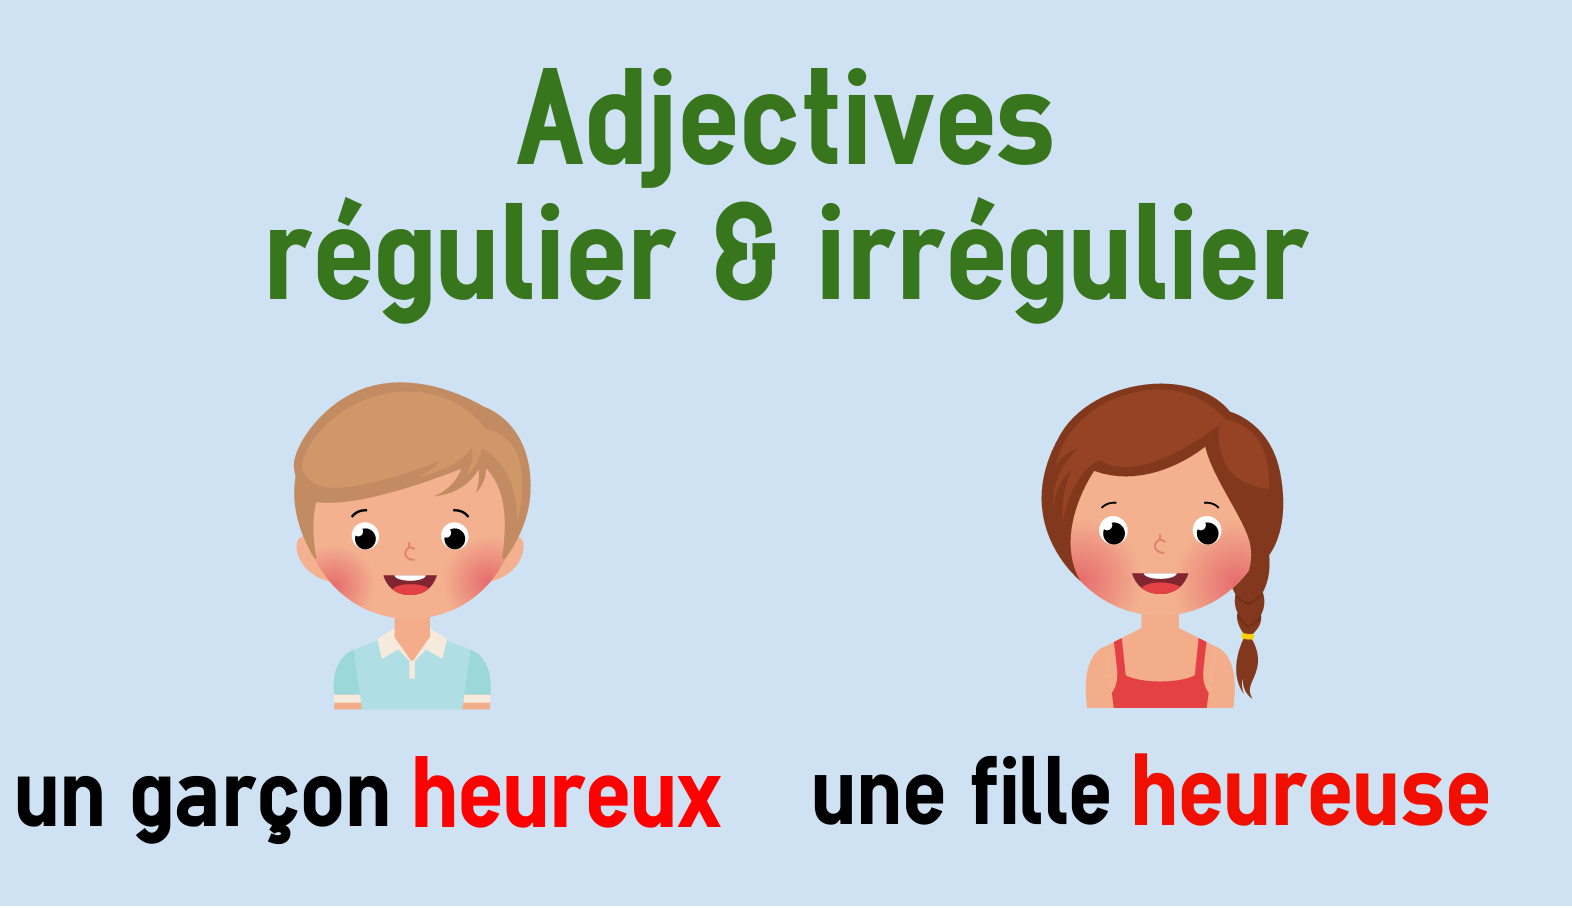 Endings Of Regular And Irregular French Adjectives